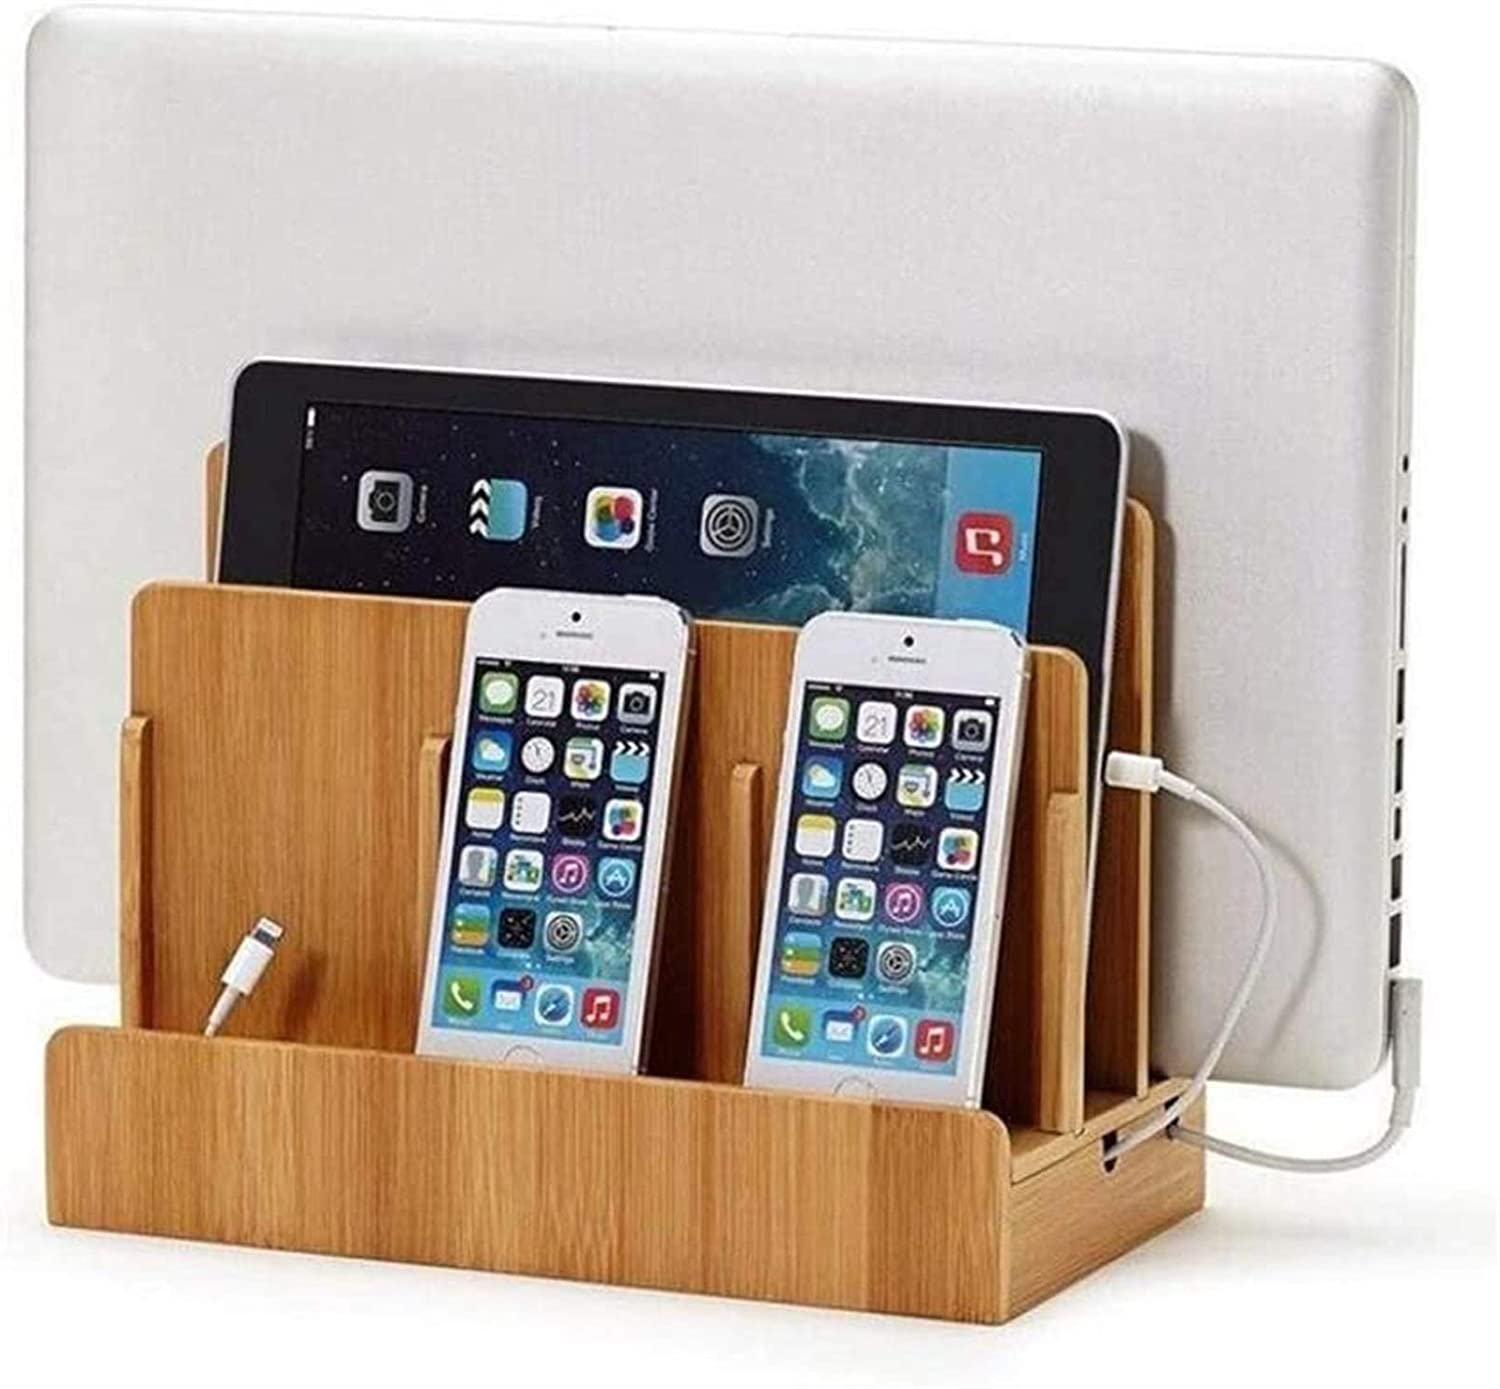 GJJSZ Router Rack Shelves Bamboo Management wit Max 47% OFF Spring new work one after another , Box Cable